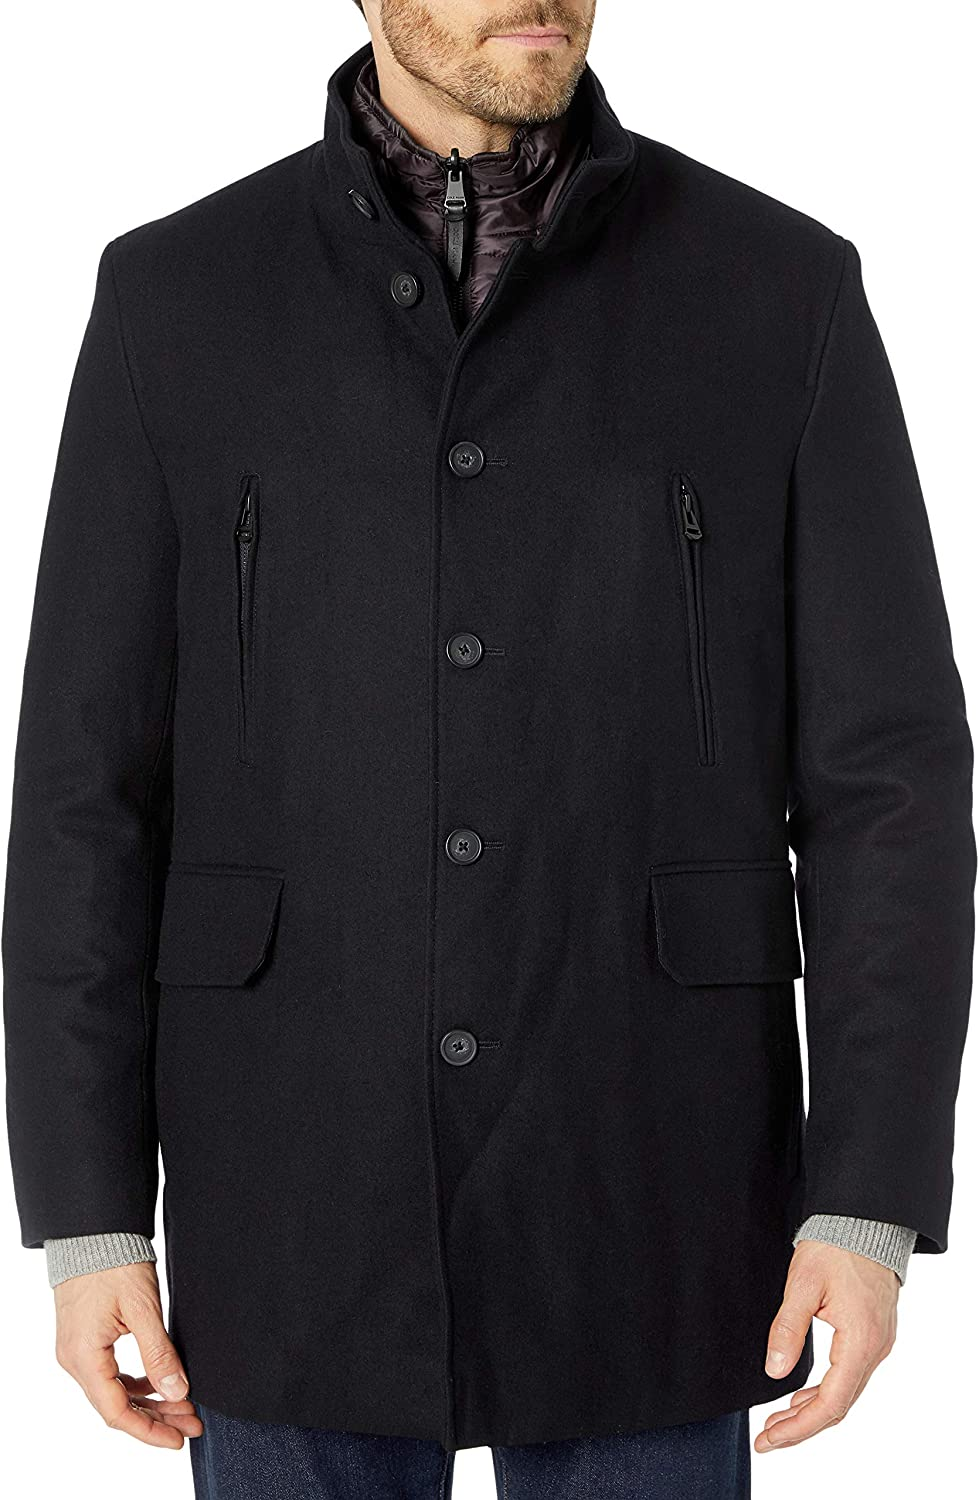 Cole Haan Men's Melton 3-in-1 Wool Jacket with Removable Bib